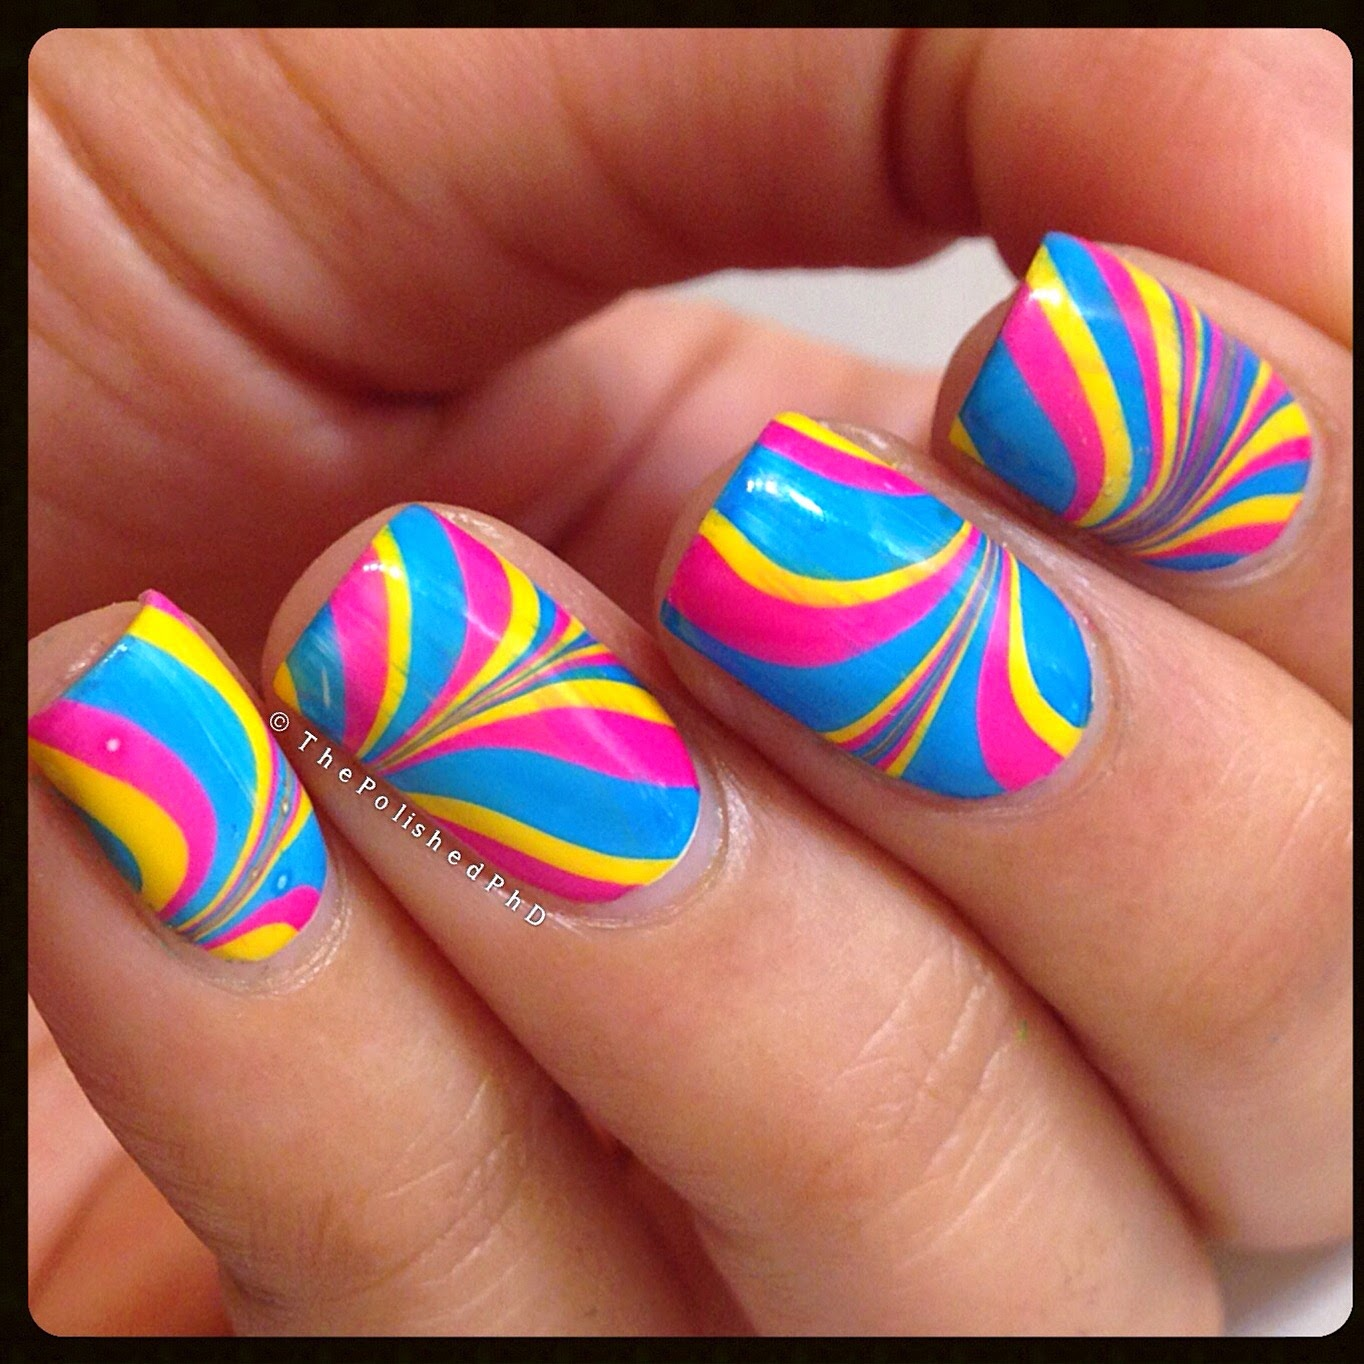 Neon Watermarble using Sinful Colors | The Polished PhD